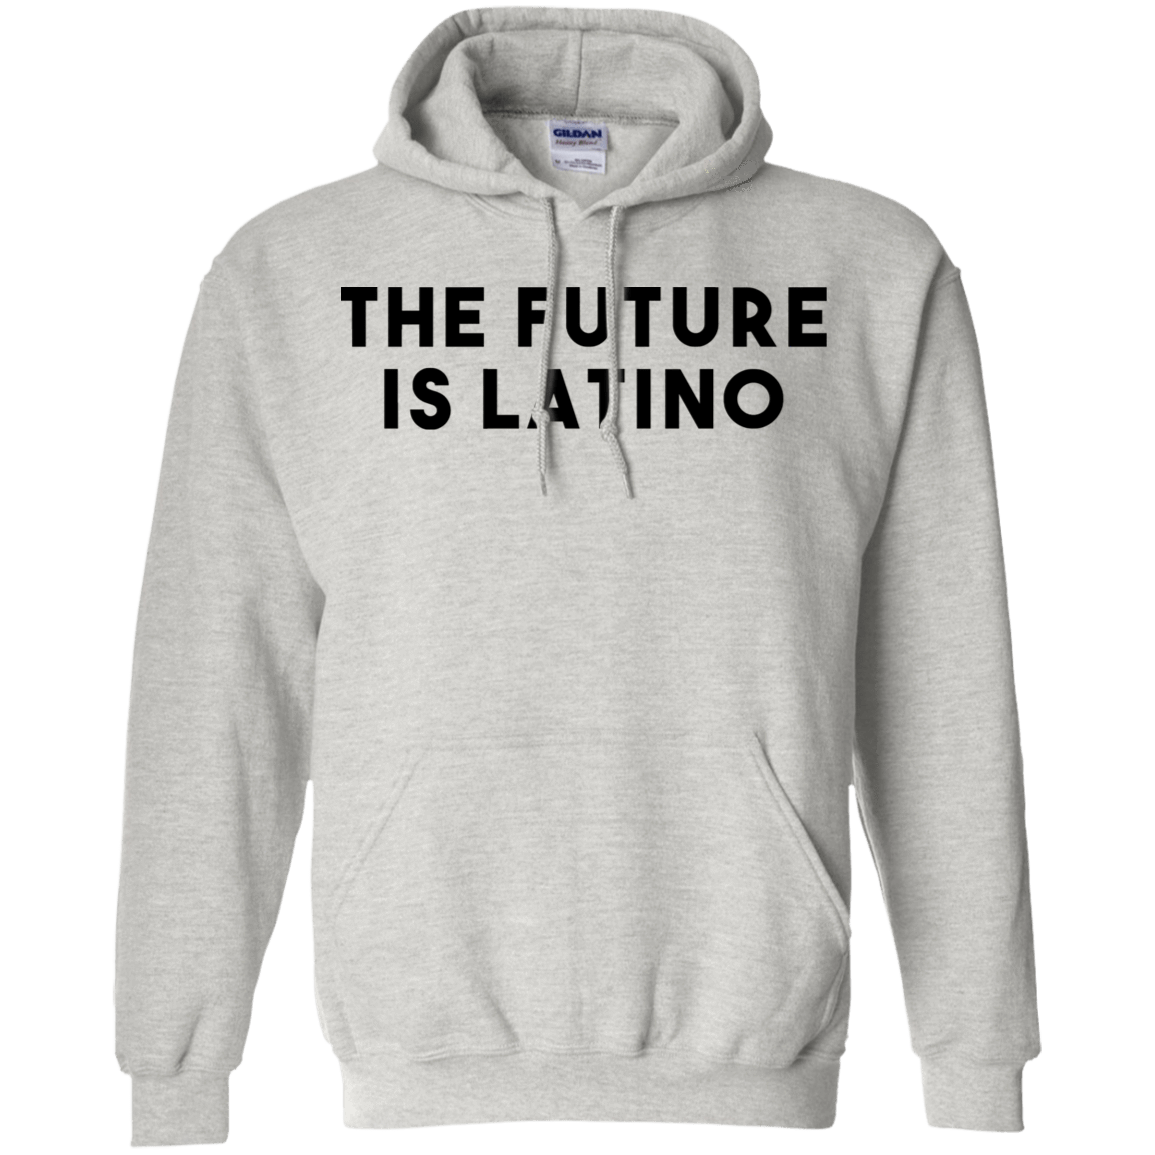 The Future Is Latino 541-4748-73057006-23071 - Tee Ript